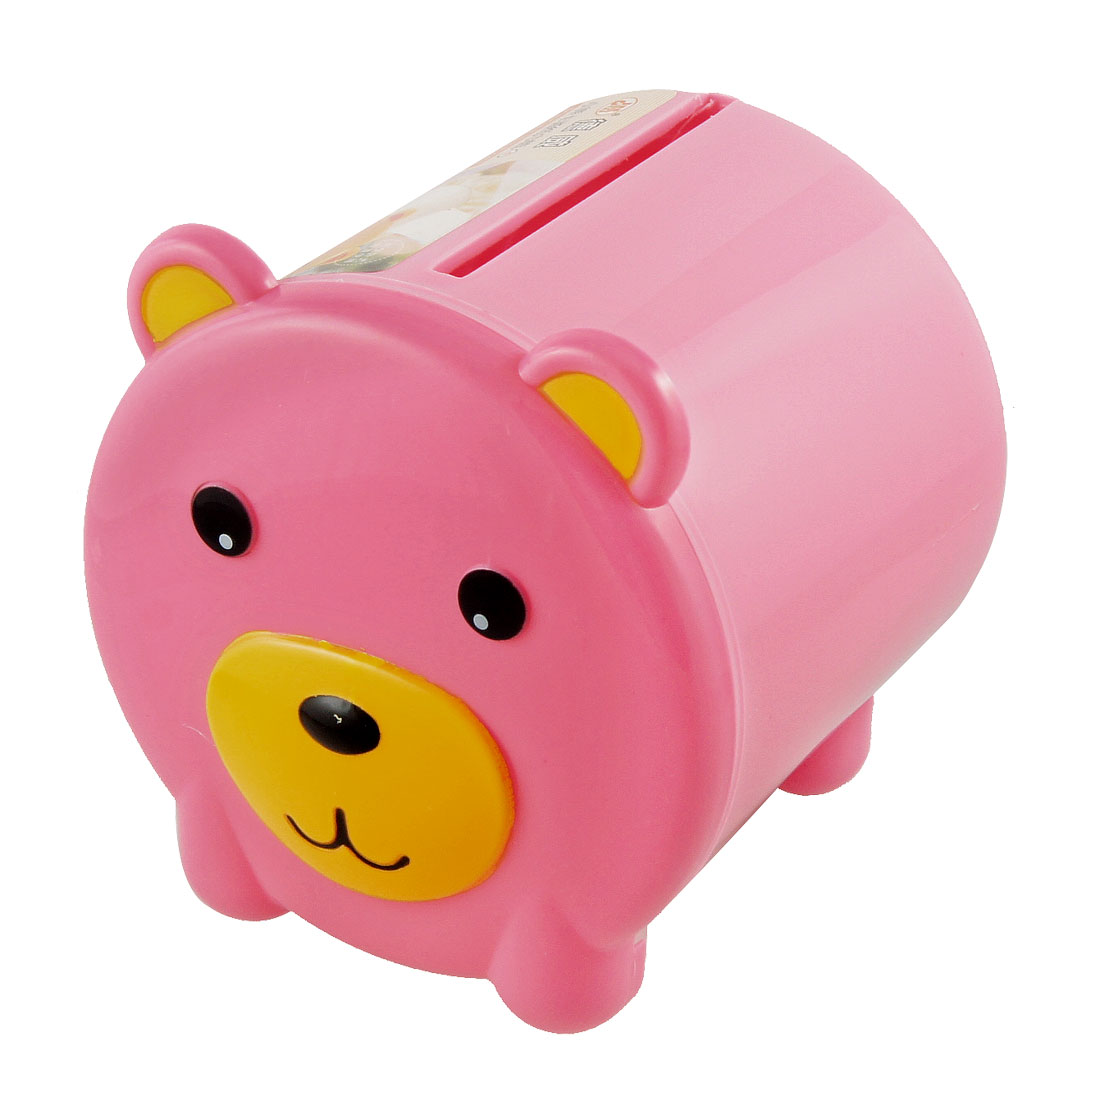 Pink Bear Cover Hard Plastic Cylindrical Tissue Box Container